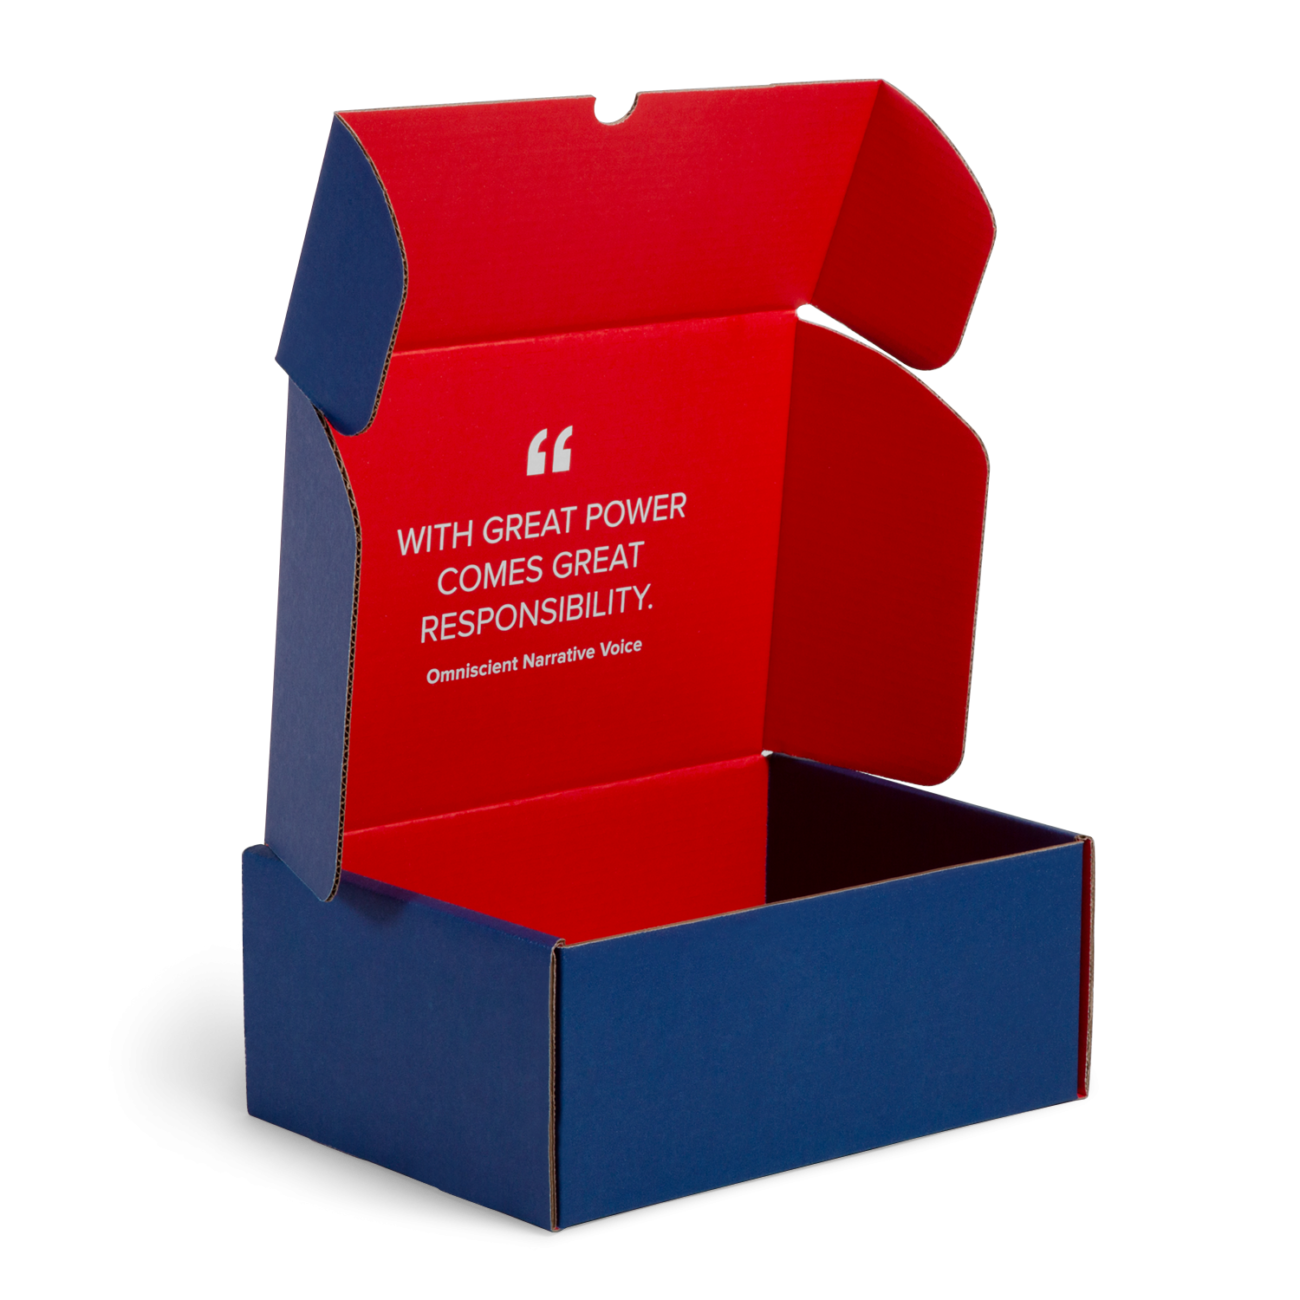 Custom roll end tuck front corrugated mailer box with roll end base, cherry locks, dust flaps, thumb notch, tuck front lid. Flexography on mottled white liner.